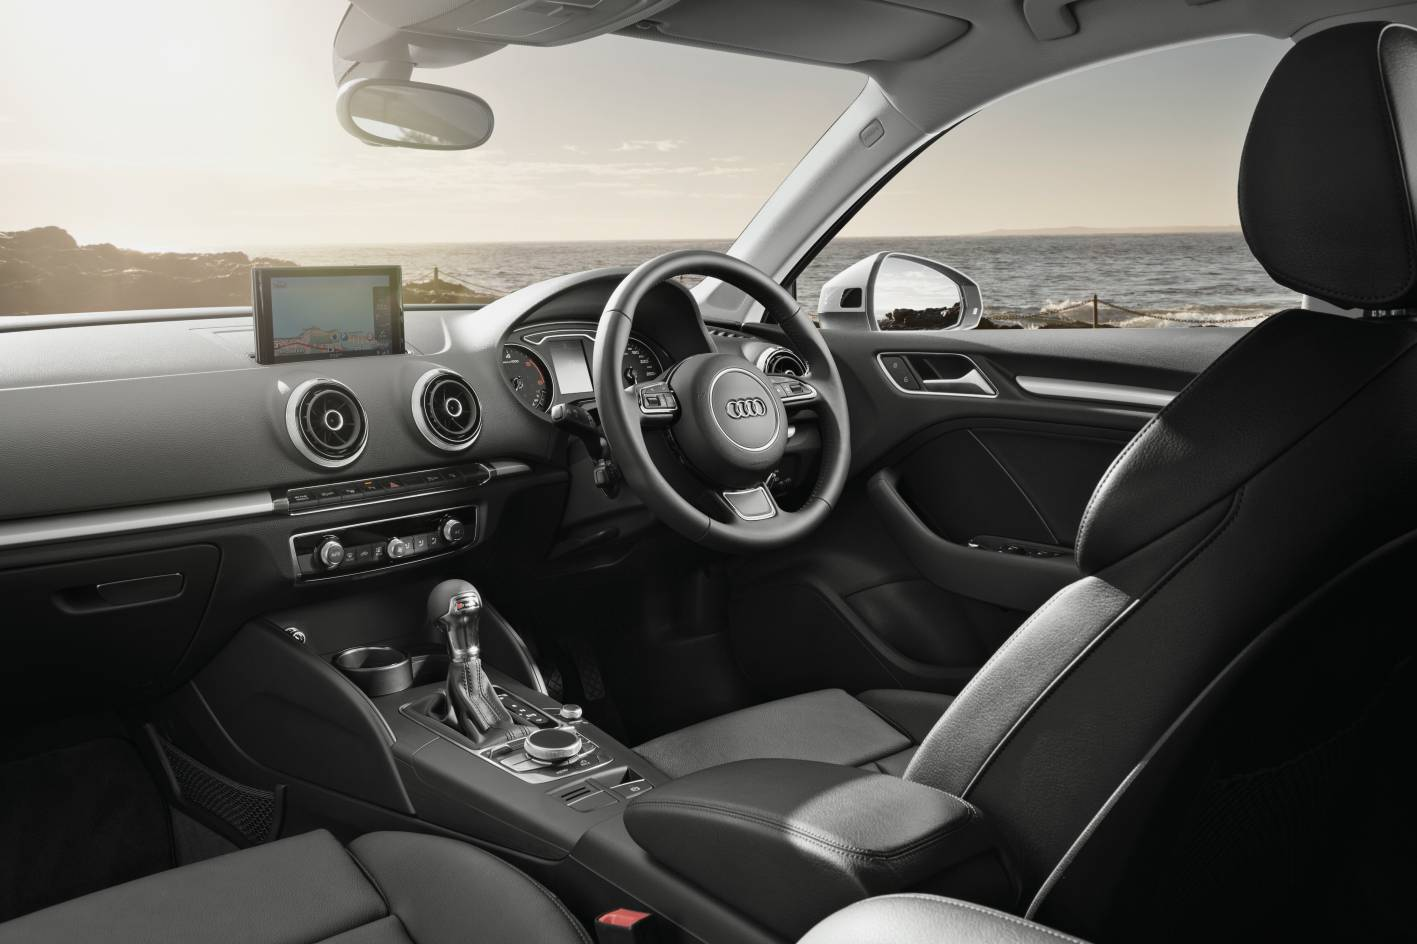 2014 Audi A3 Sedan Tdi Ambition Interior Forcegt Com